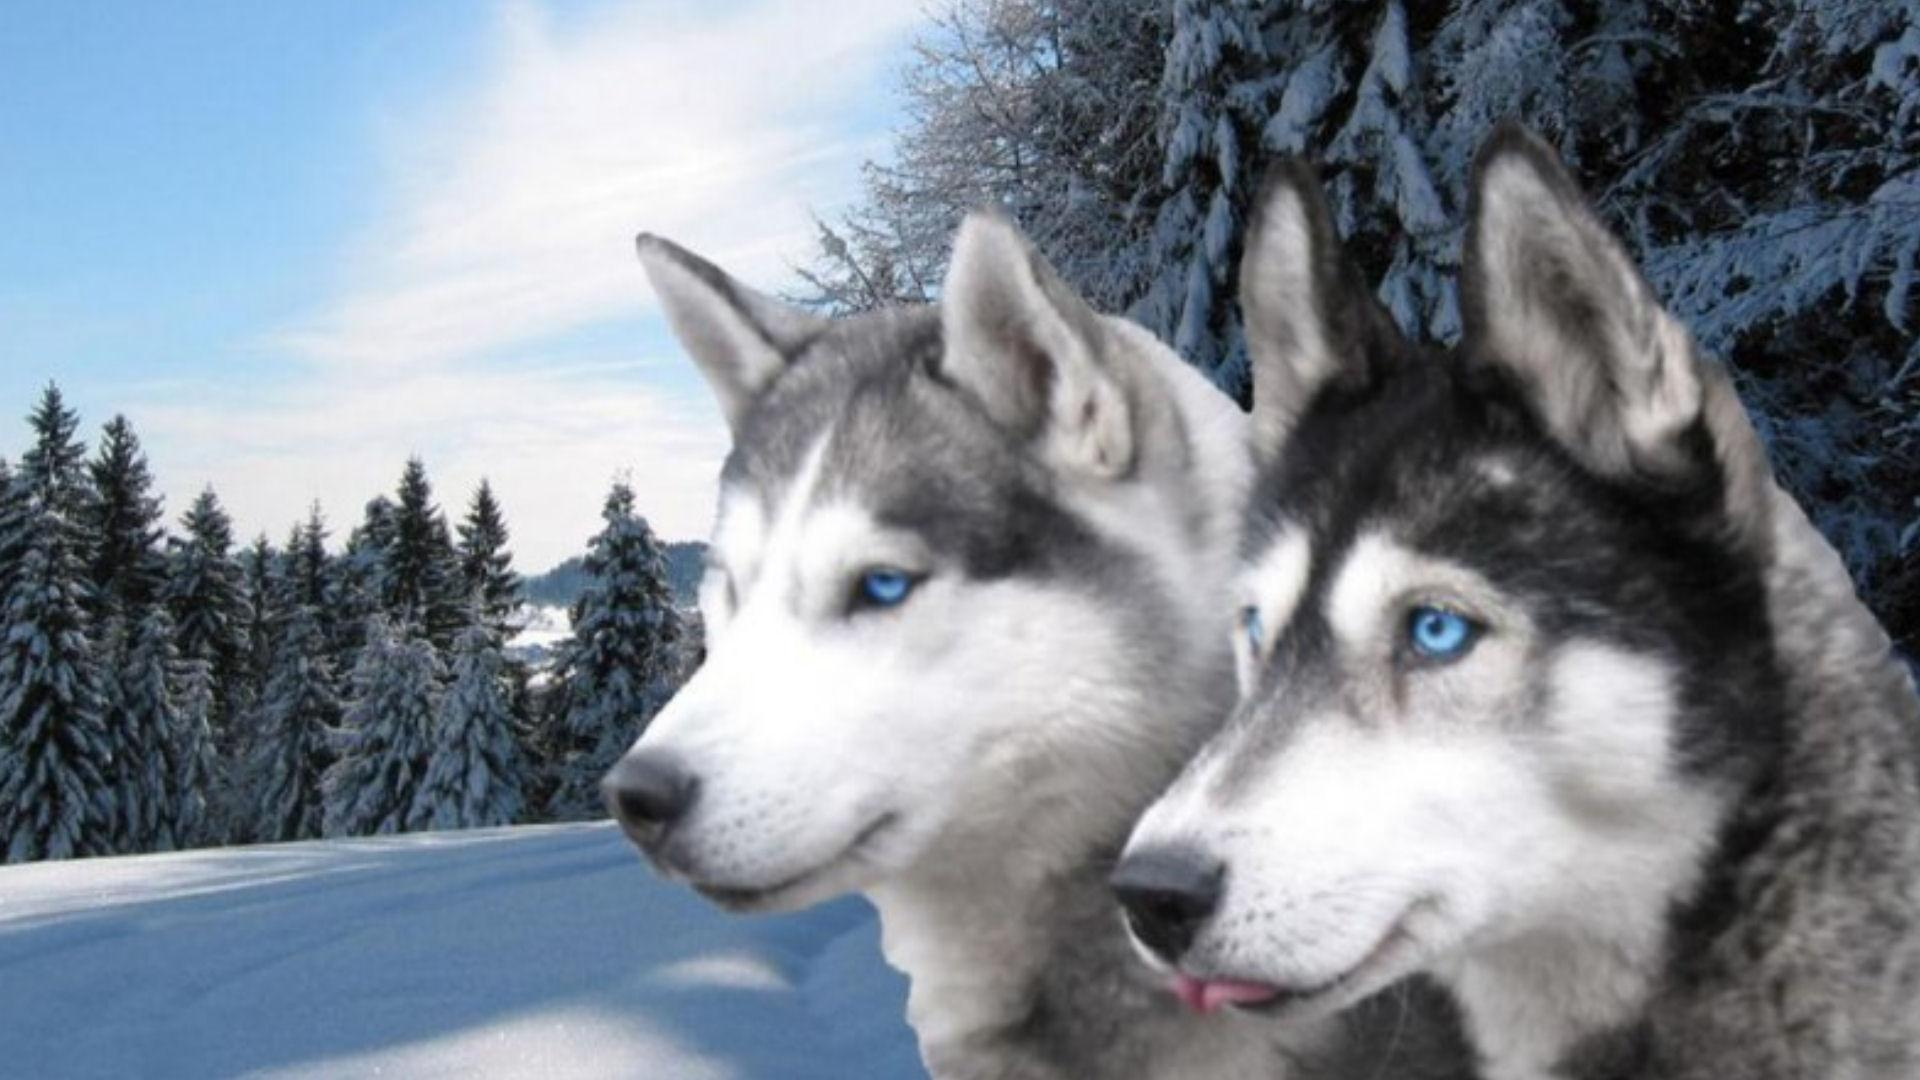 Wallpaper Of Huskies